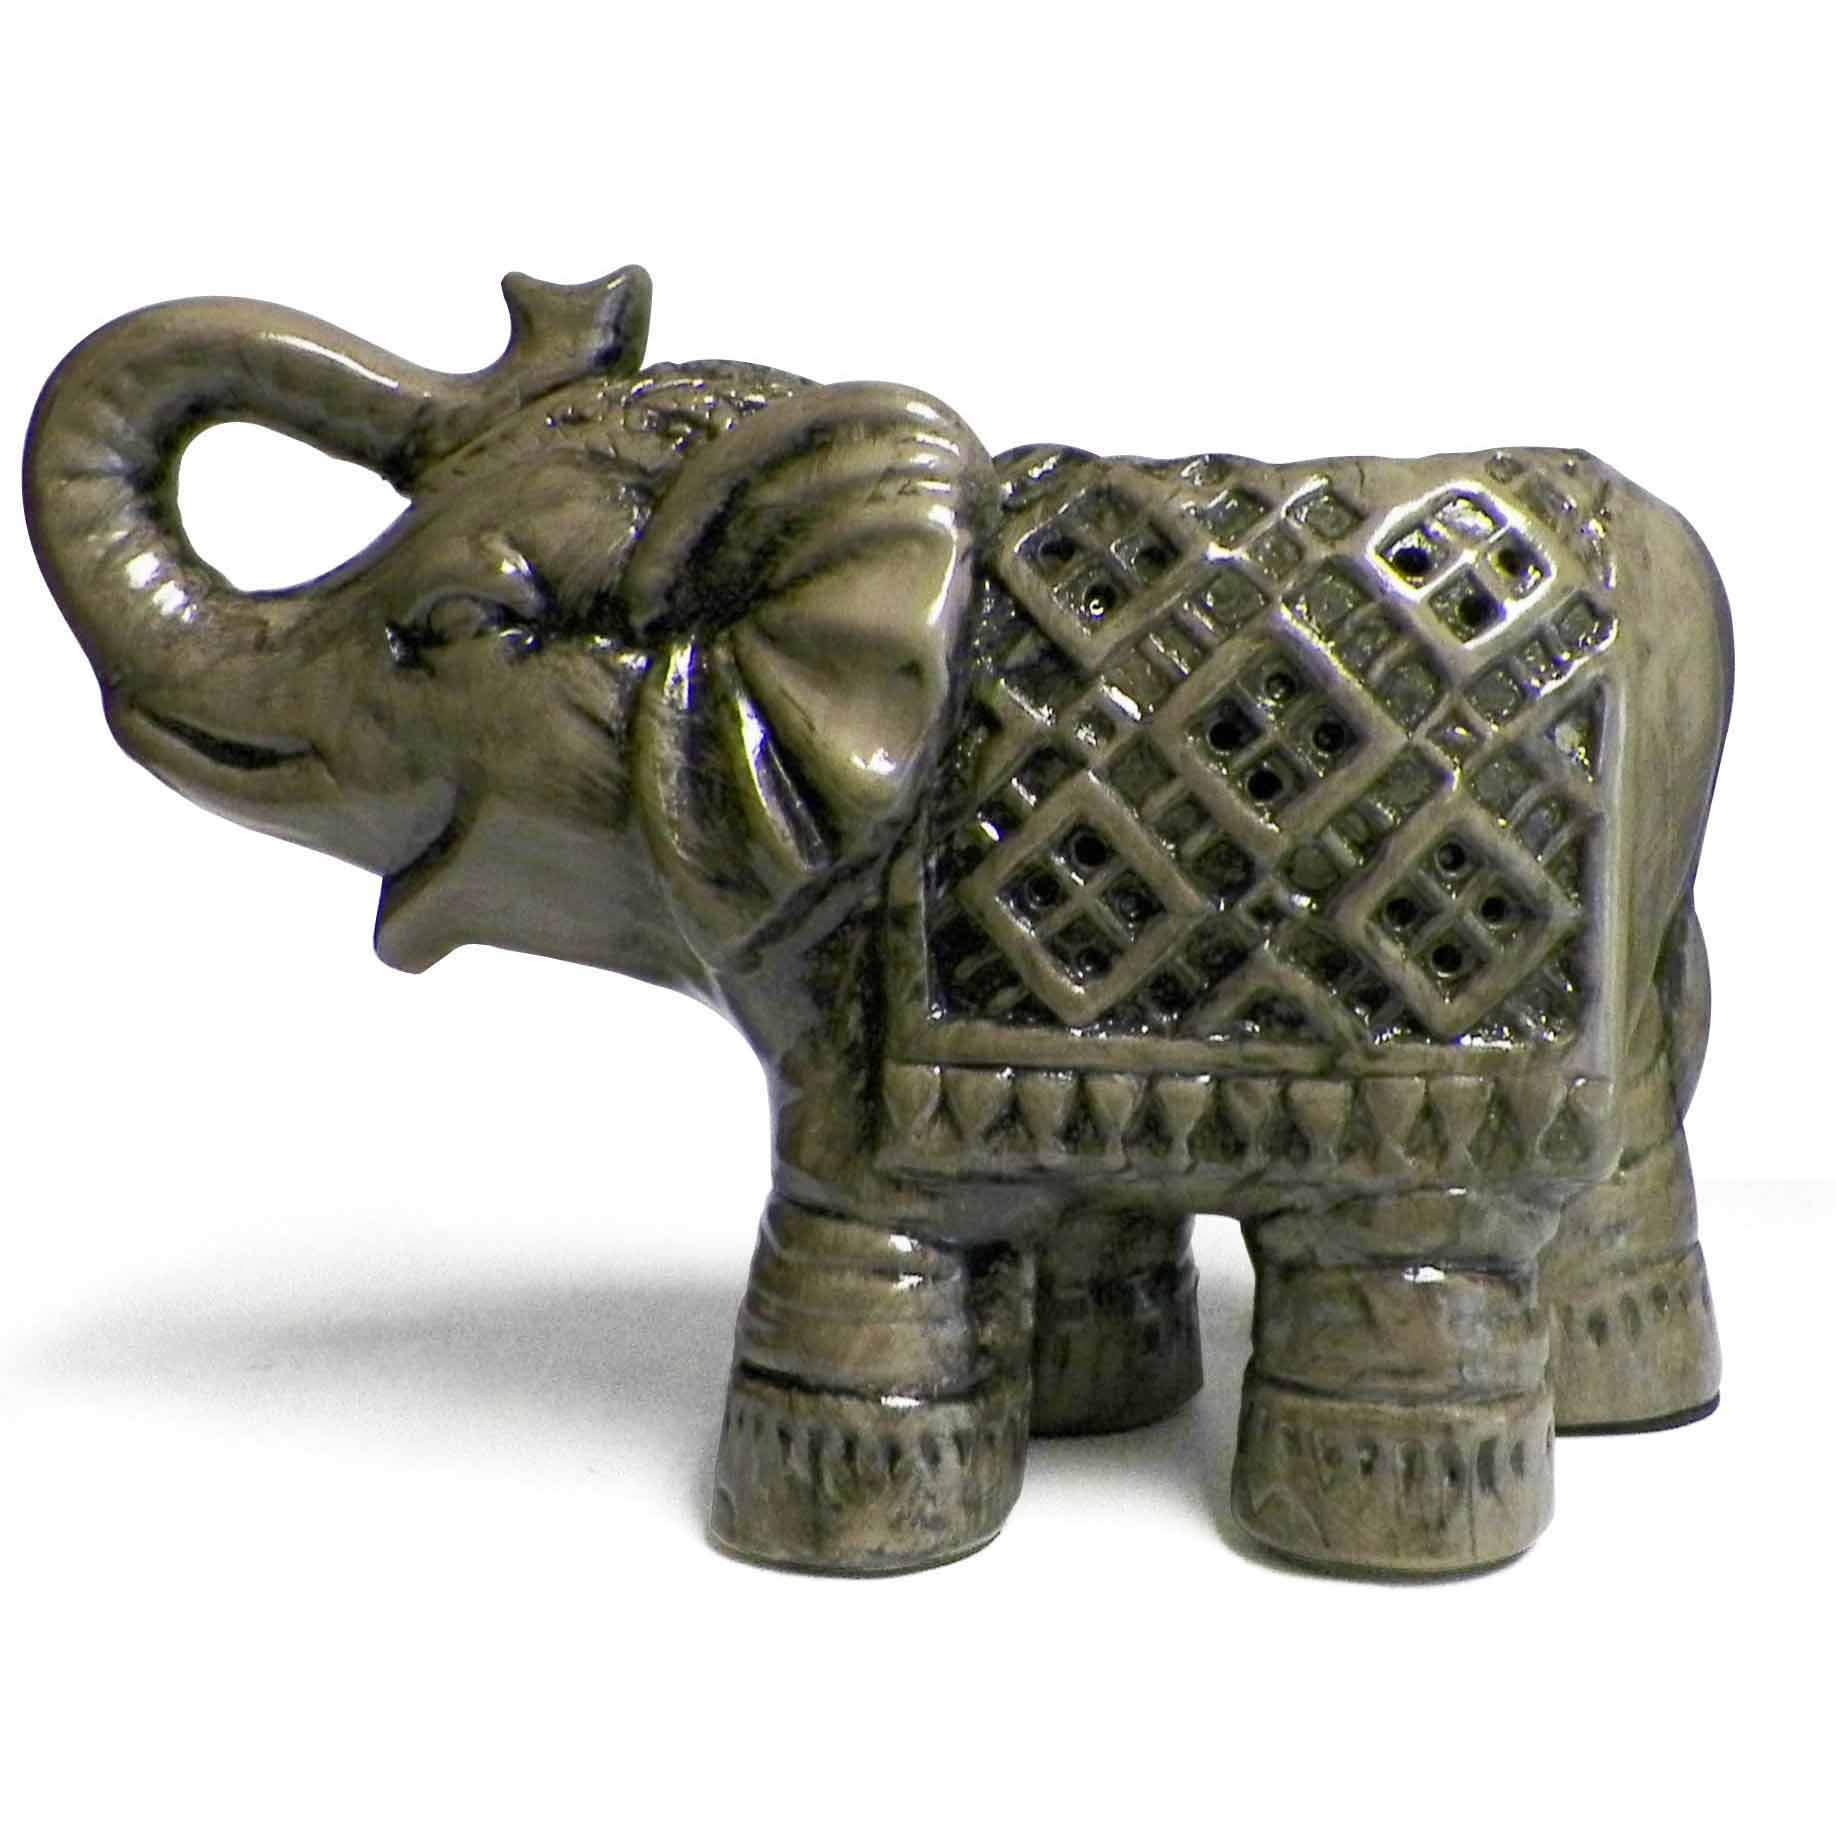 Better Homes & Gardens Elephant Ceramic Tealight Candle Holder by Wal-Mart Stores, Inc.